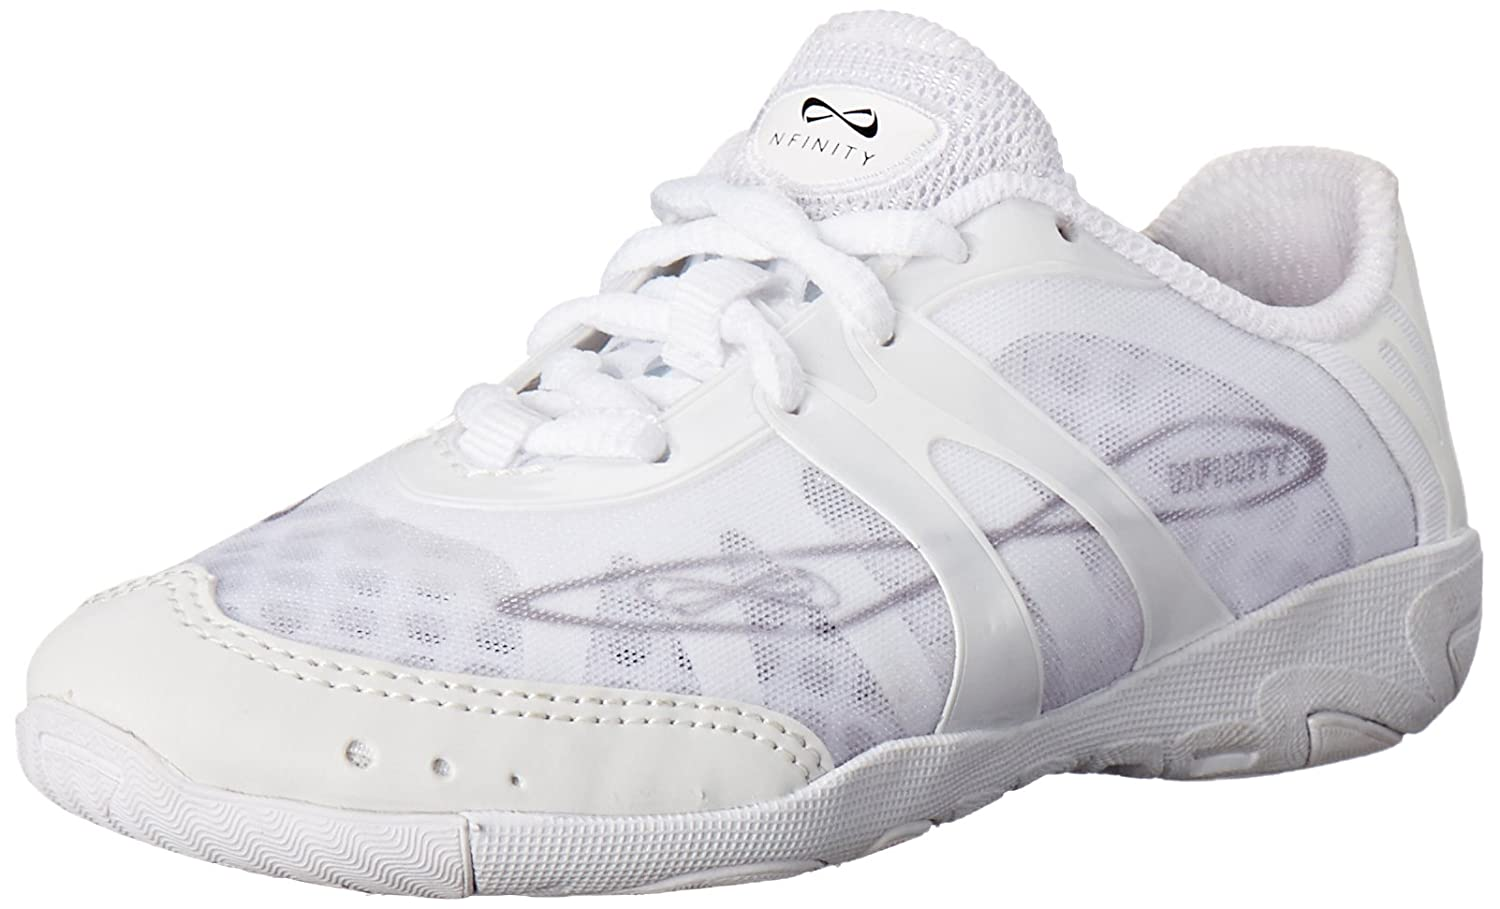 Nfinity Vengeance Cheer Shoe (Pair) B00P9Q24UY 13|White